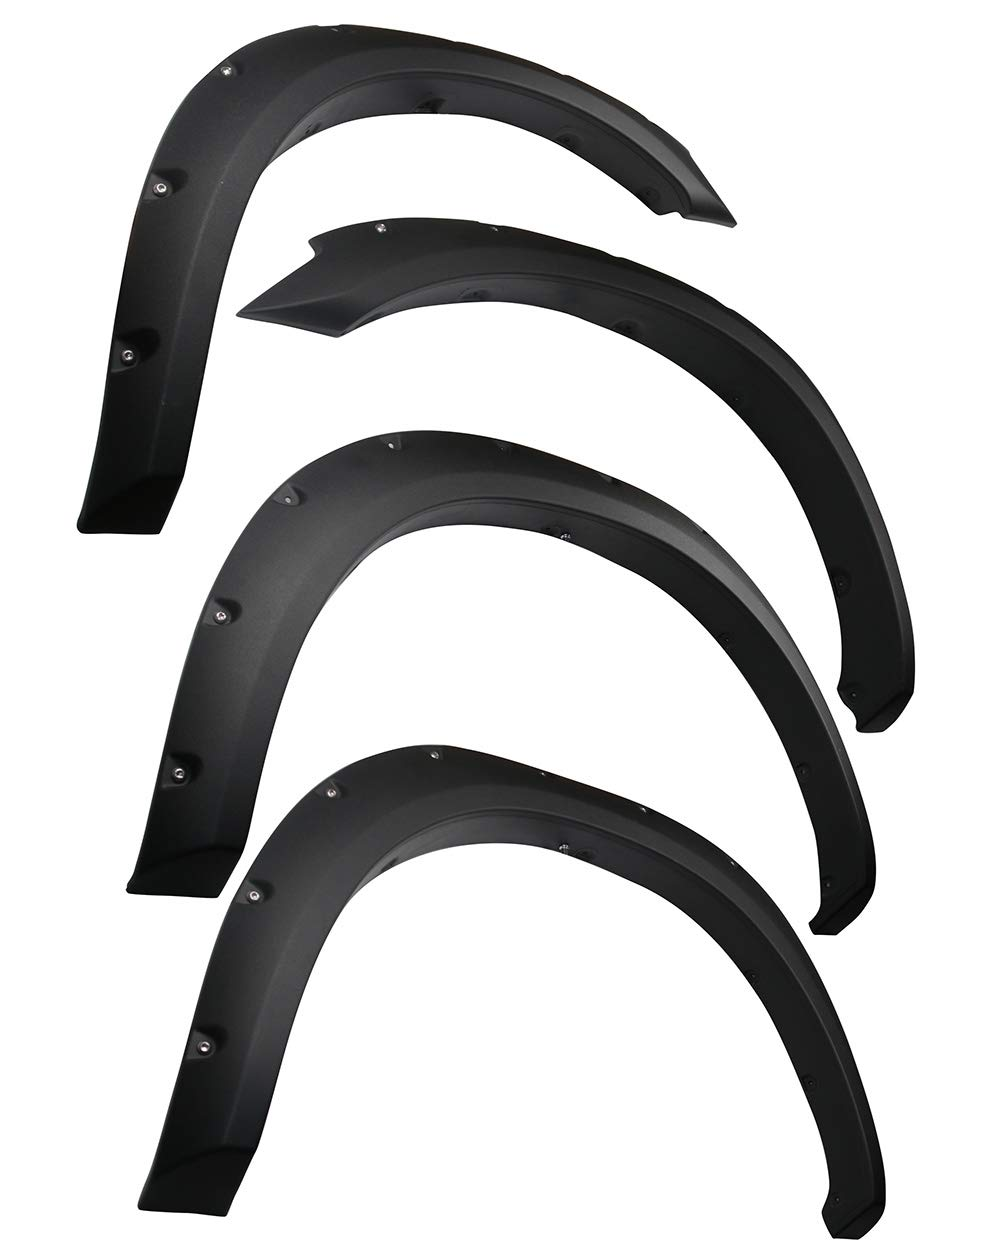 ONLY Fit Fleetside Models with 76.3 /& 98.3 Bed | Paintable Smooth Matte Black Pocket Bolt-Riveted Style Fender Flare Set 4 Piece Tyger Auto TG-FF8D4138 for 2010-2018 Dodge Ram 2500 3500